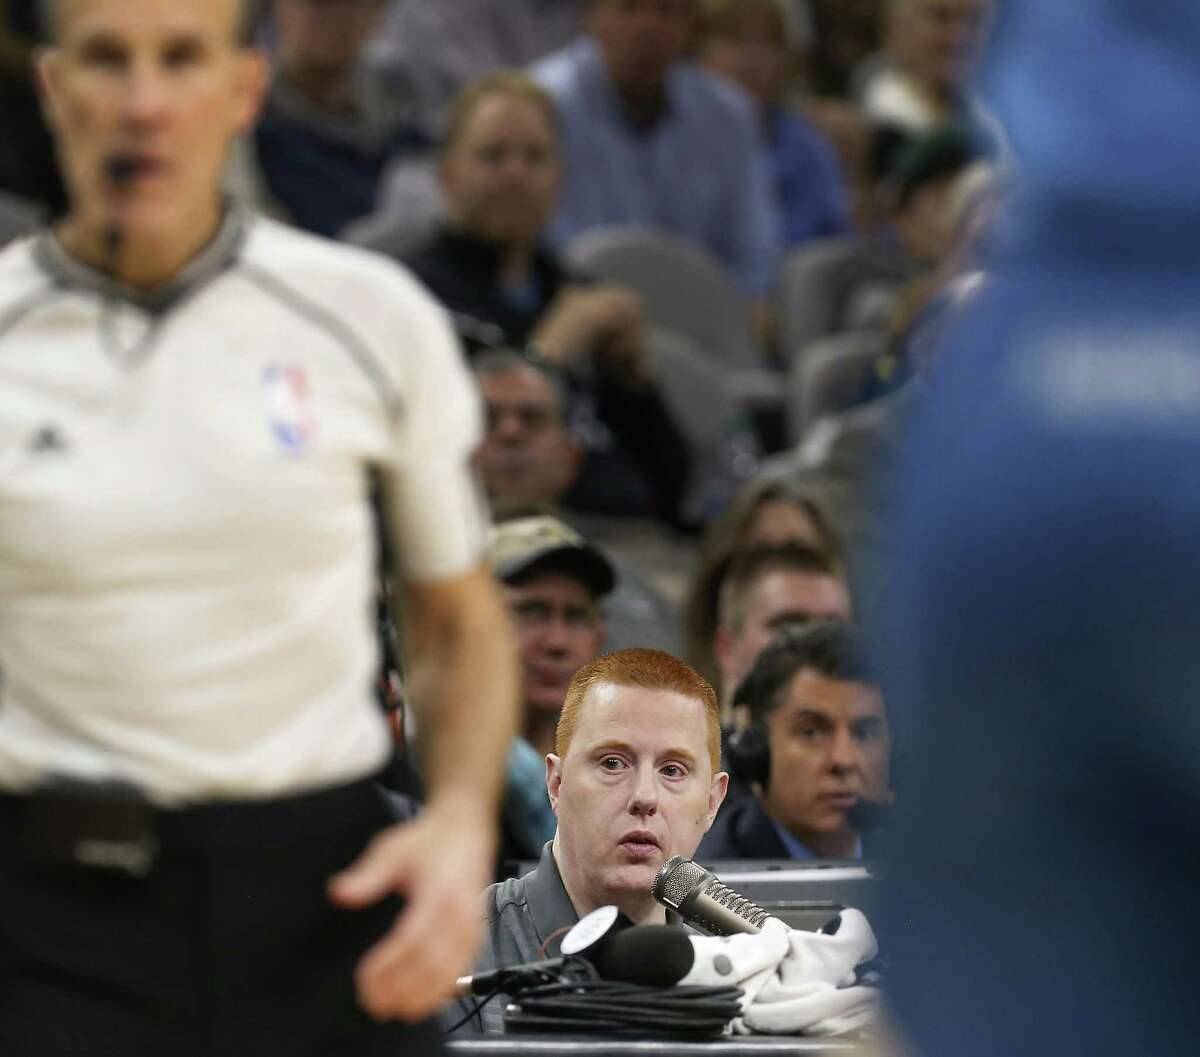 Spurs announcer Jonathan Sanford works the game against the Minnesota Timberwolves at the AT&T Center on Jan. 17, 2017.